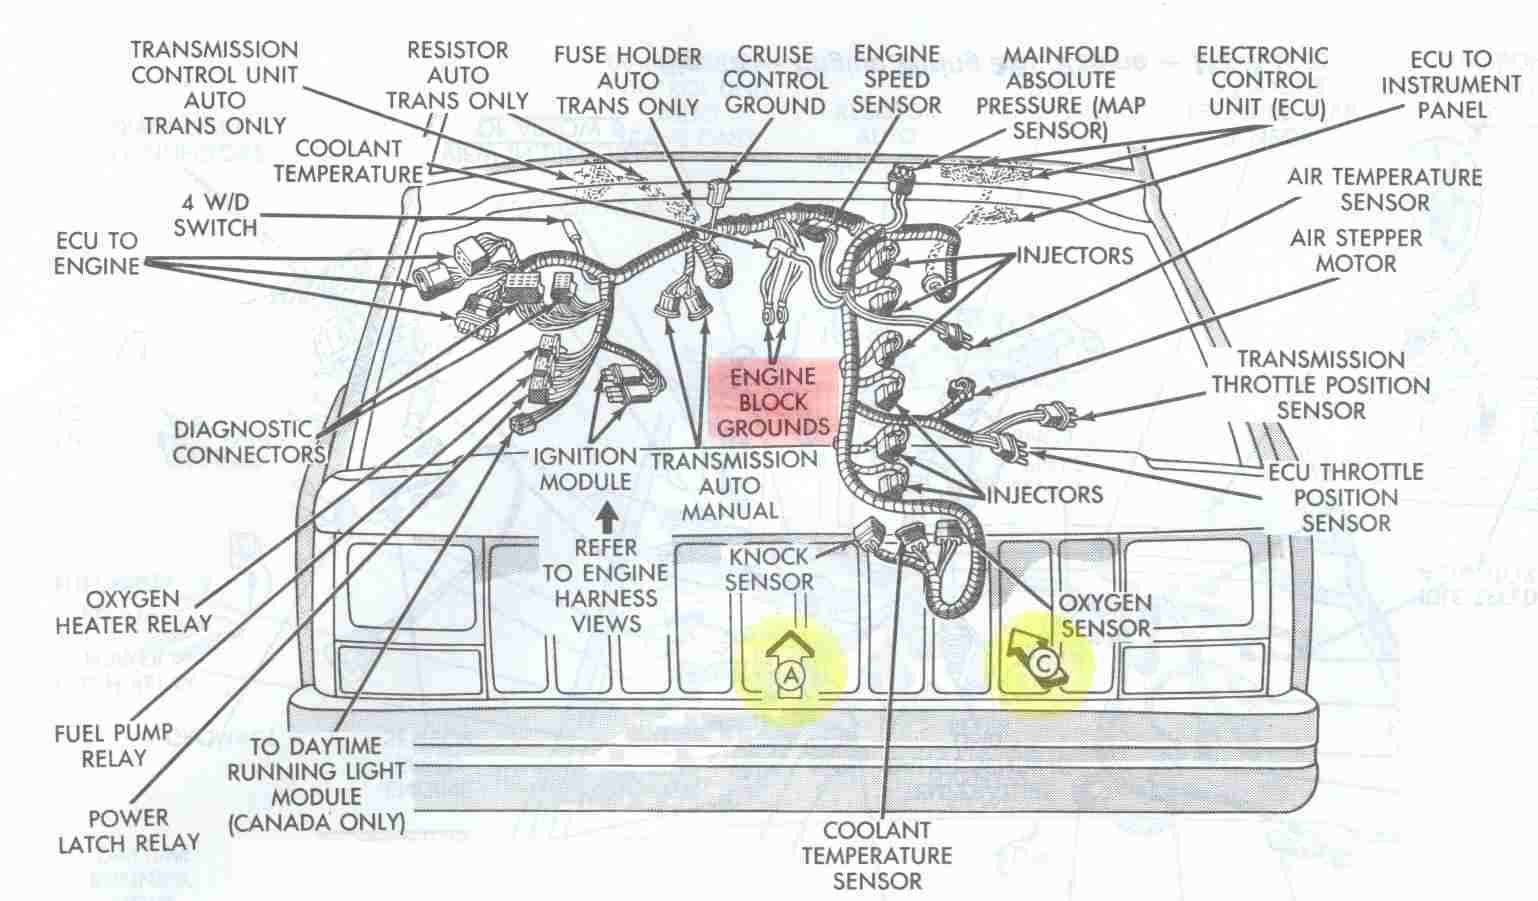 medium resolution of main fuse box cherokee xj wiring libraryengine bay schematic showing major electrical ground points for 4